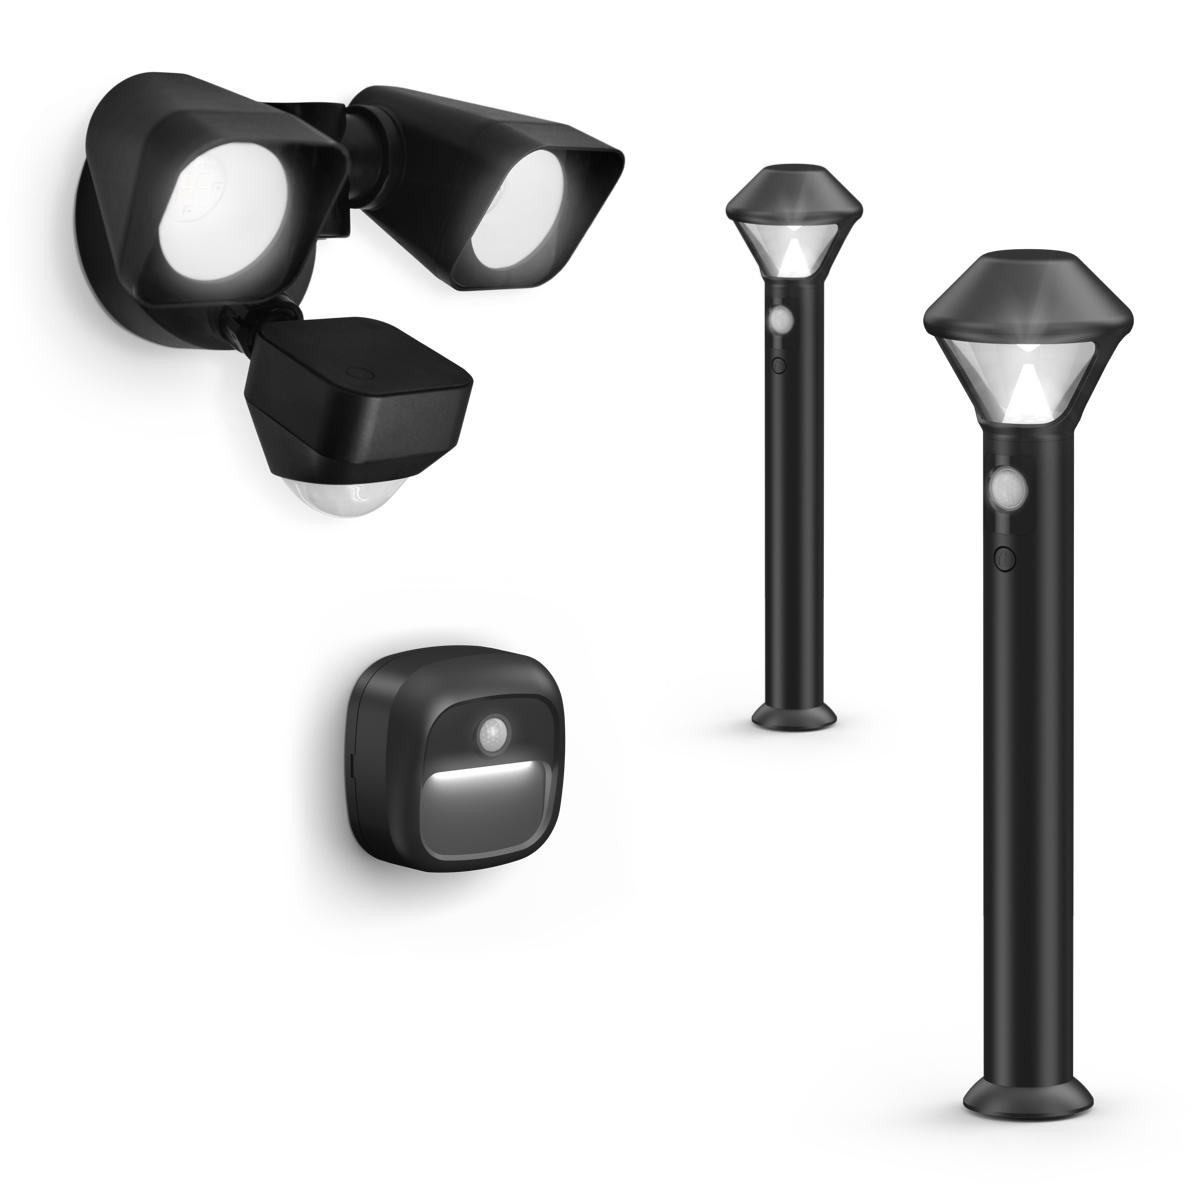 Ring Stick Up Cam, Beams, Alarm round out home security